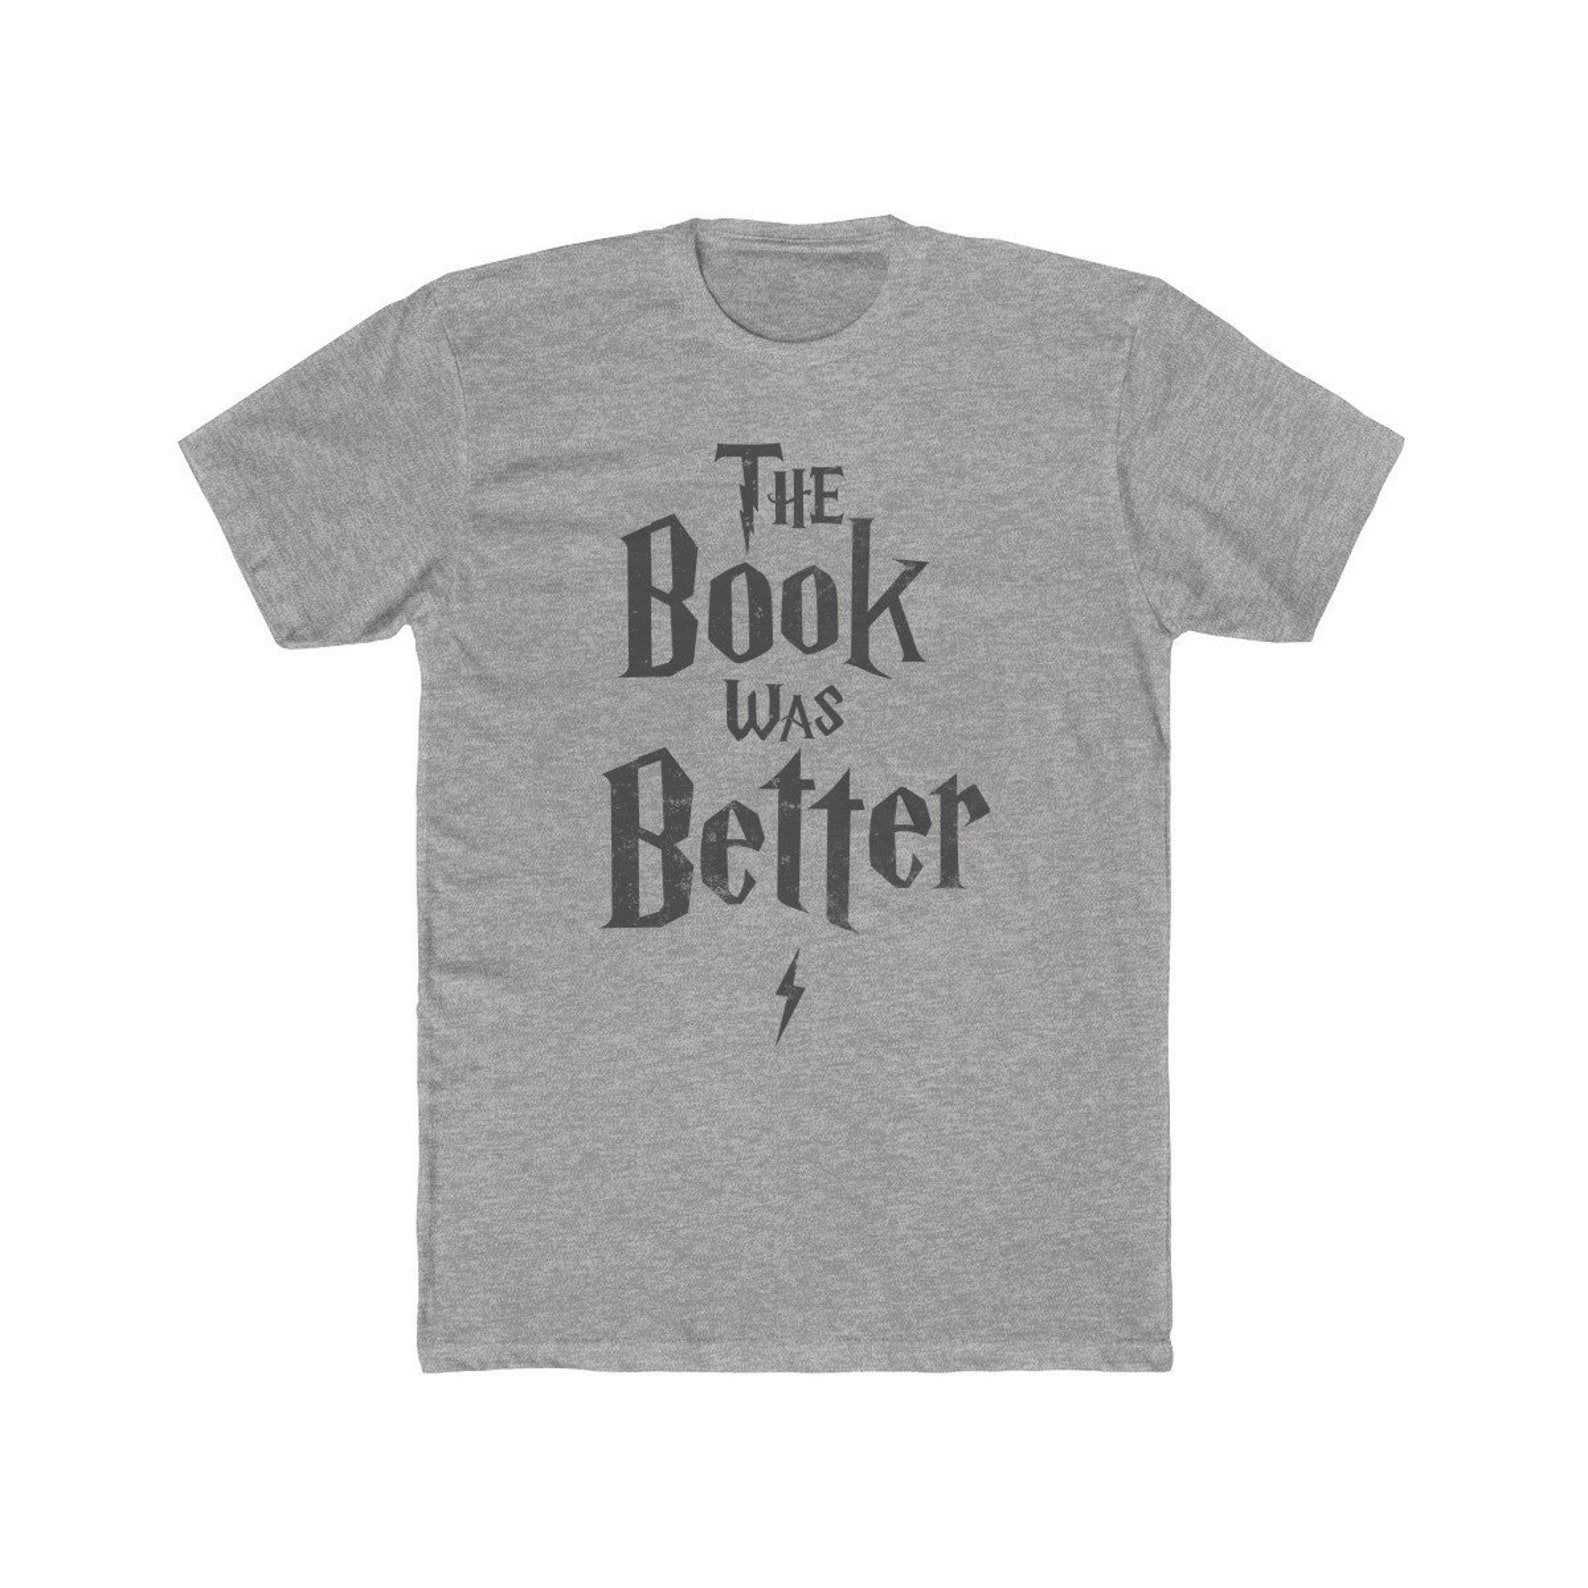 Gray Harry Potter t-shirts that say the book was better